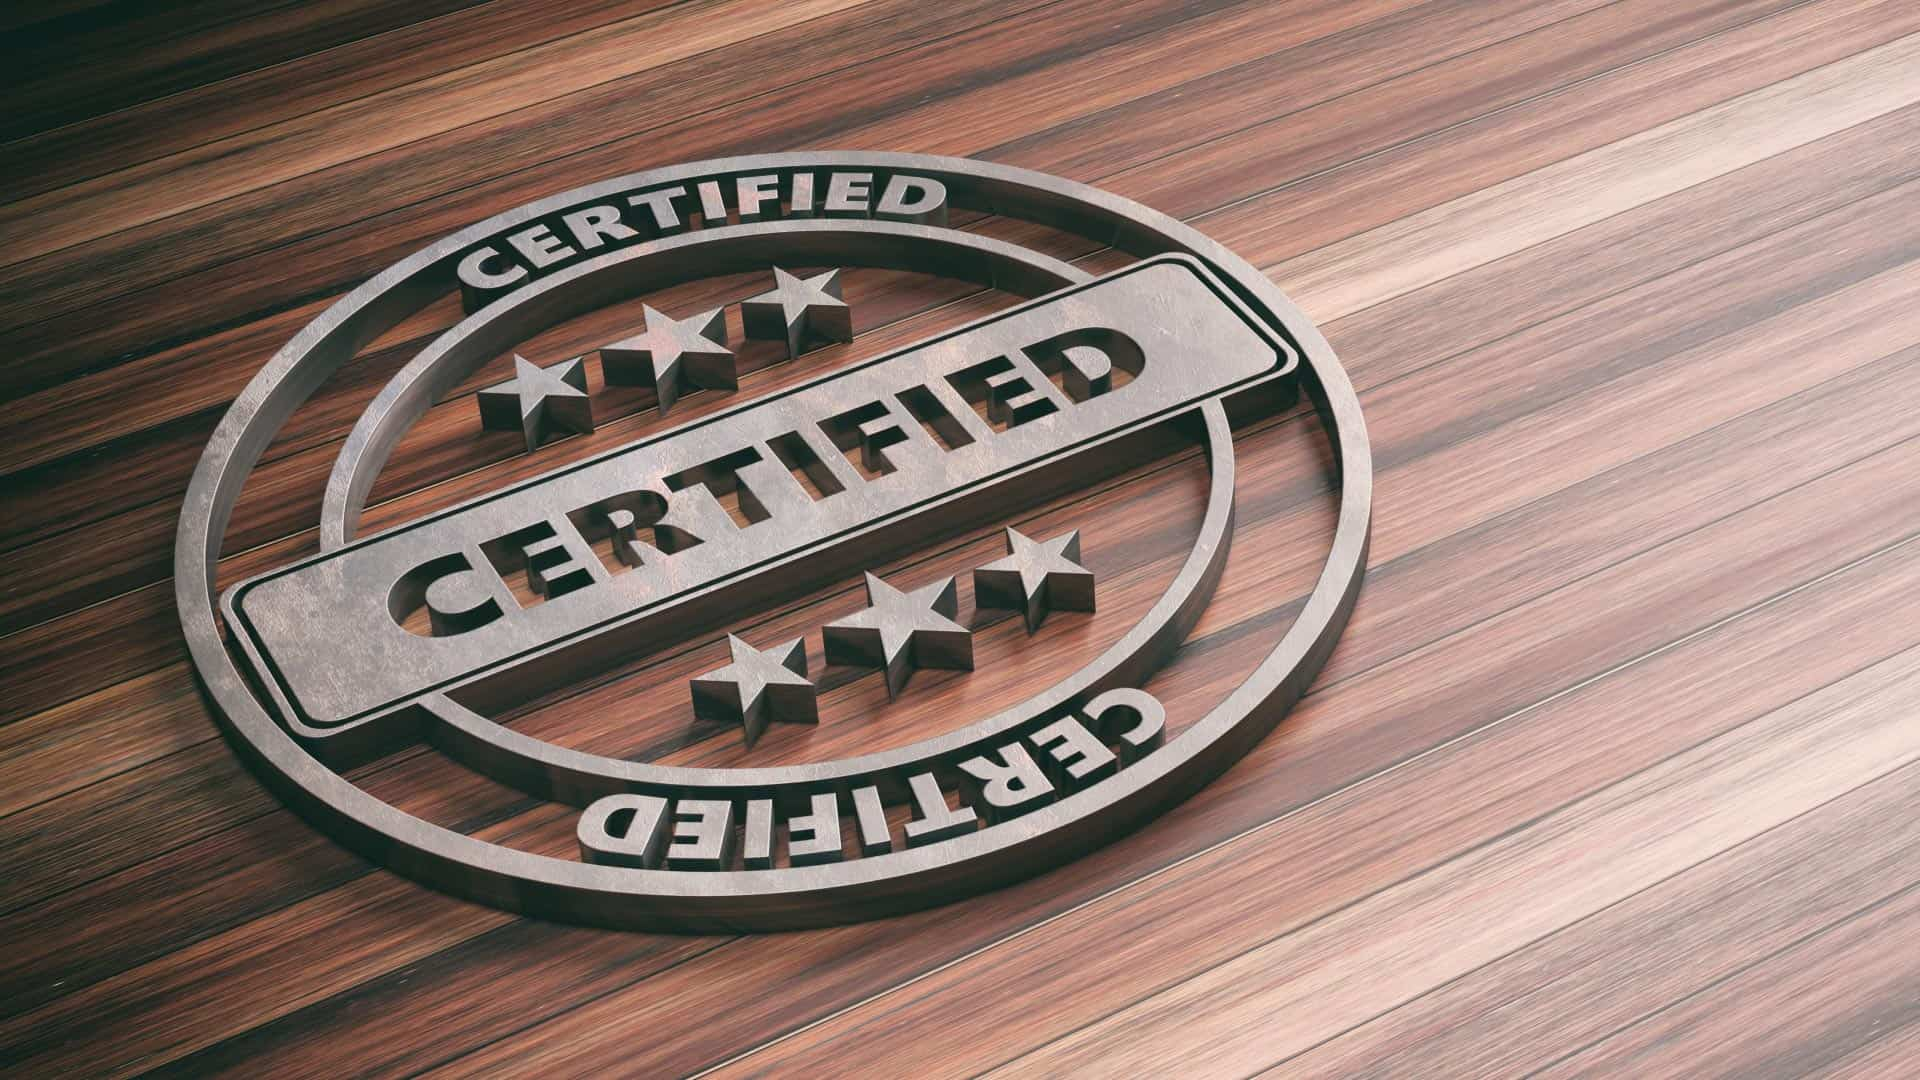 This is a Certification Symbol